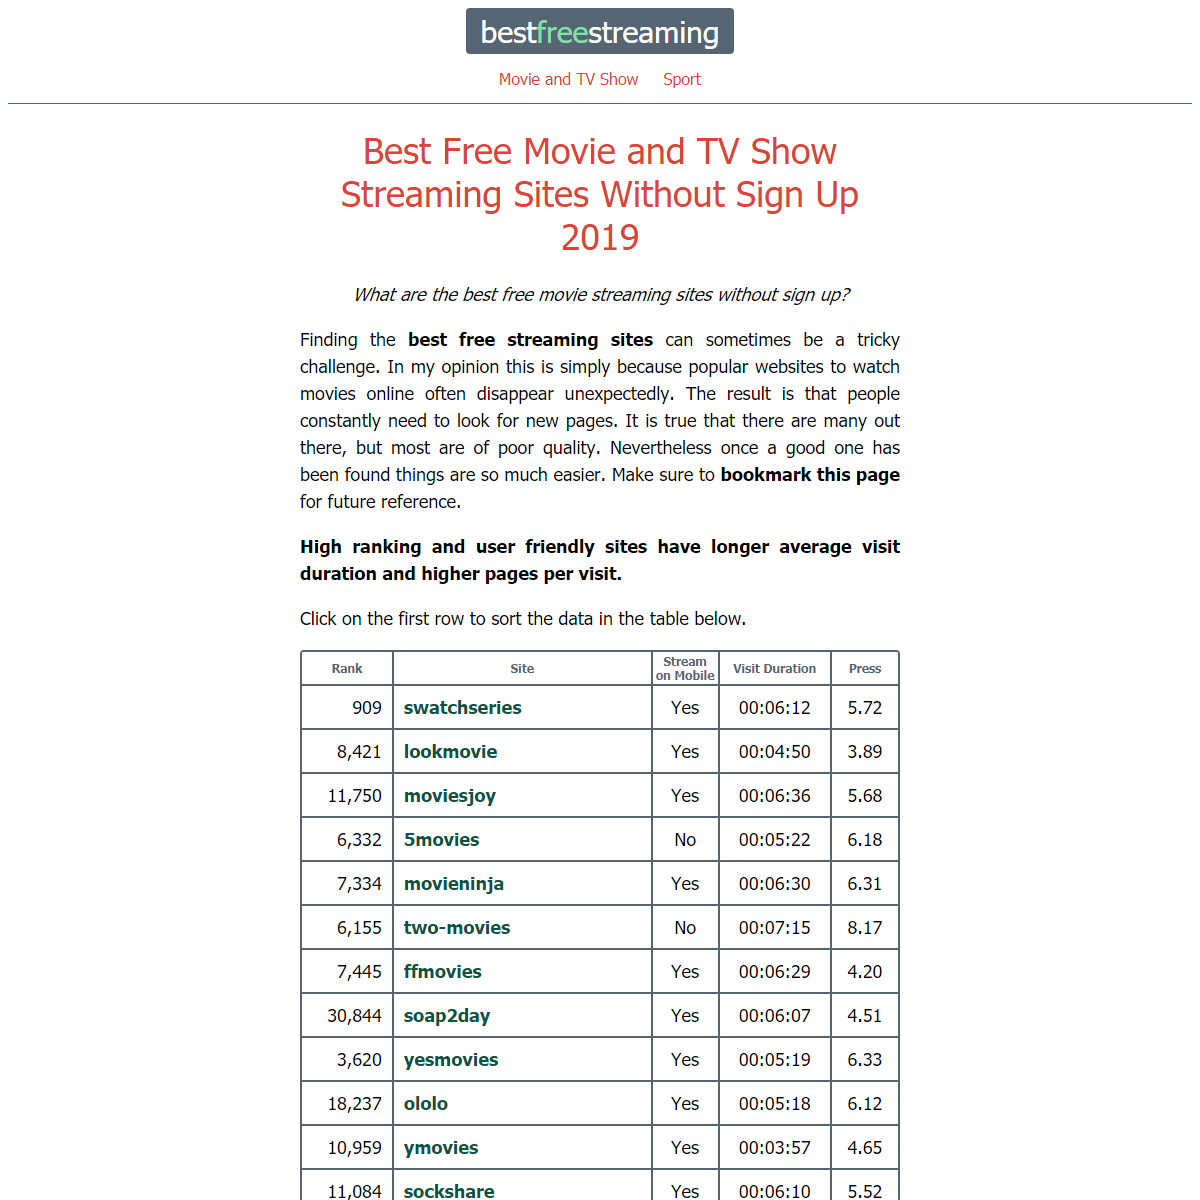 ✅ List of Best Free Movie and TV Show Streaming Sites in 2019